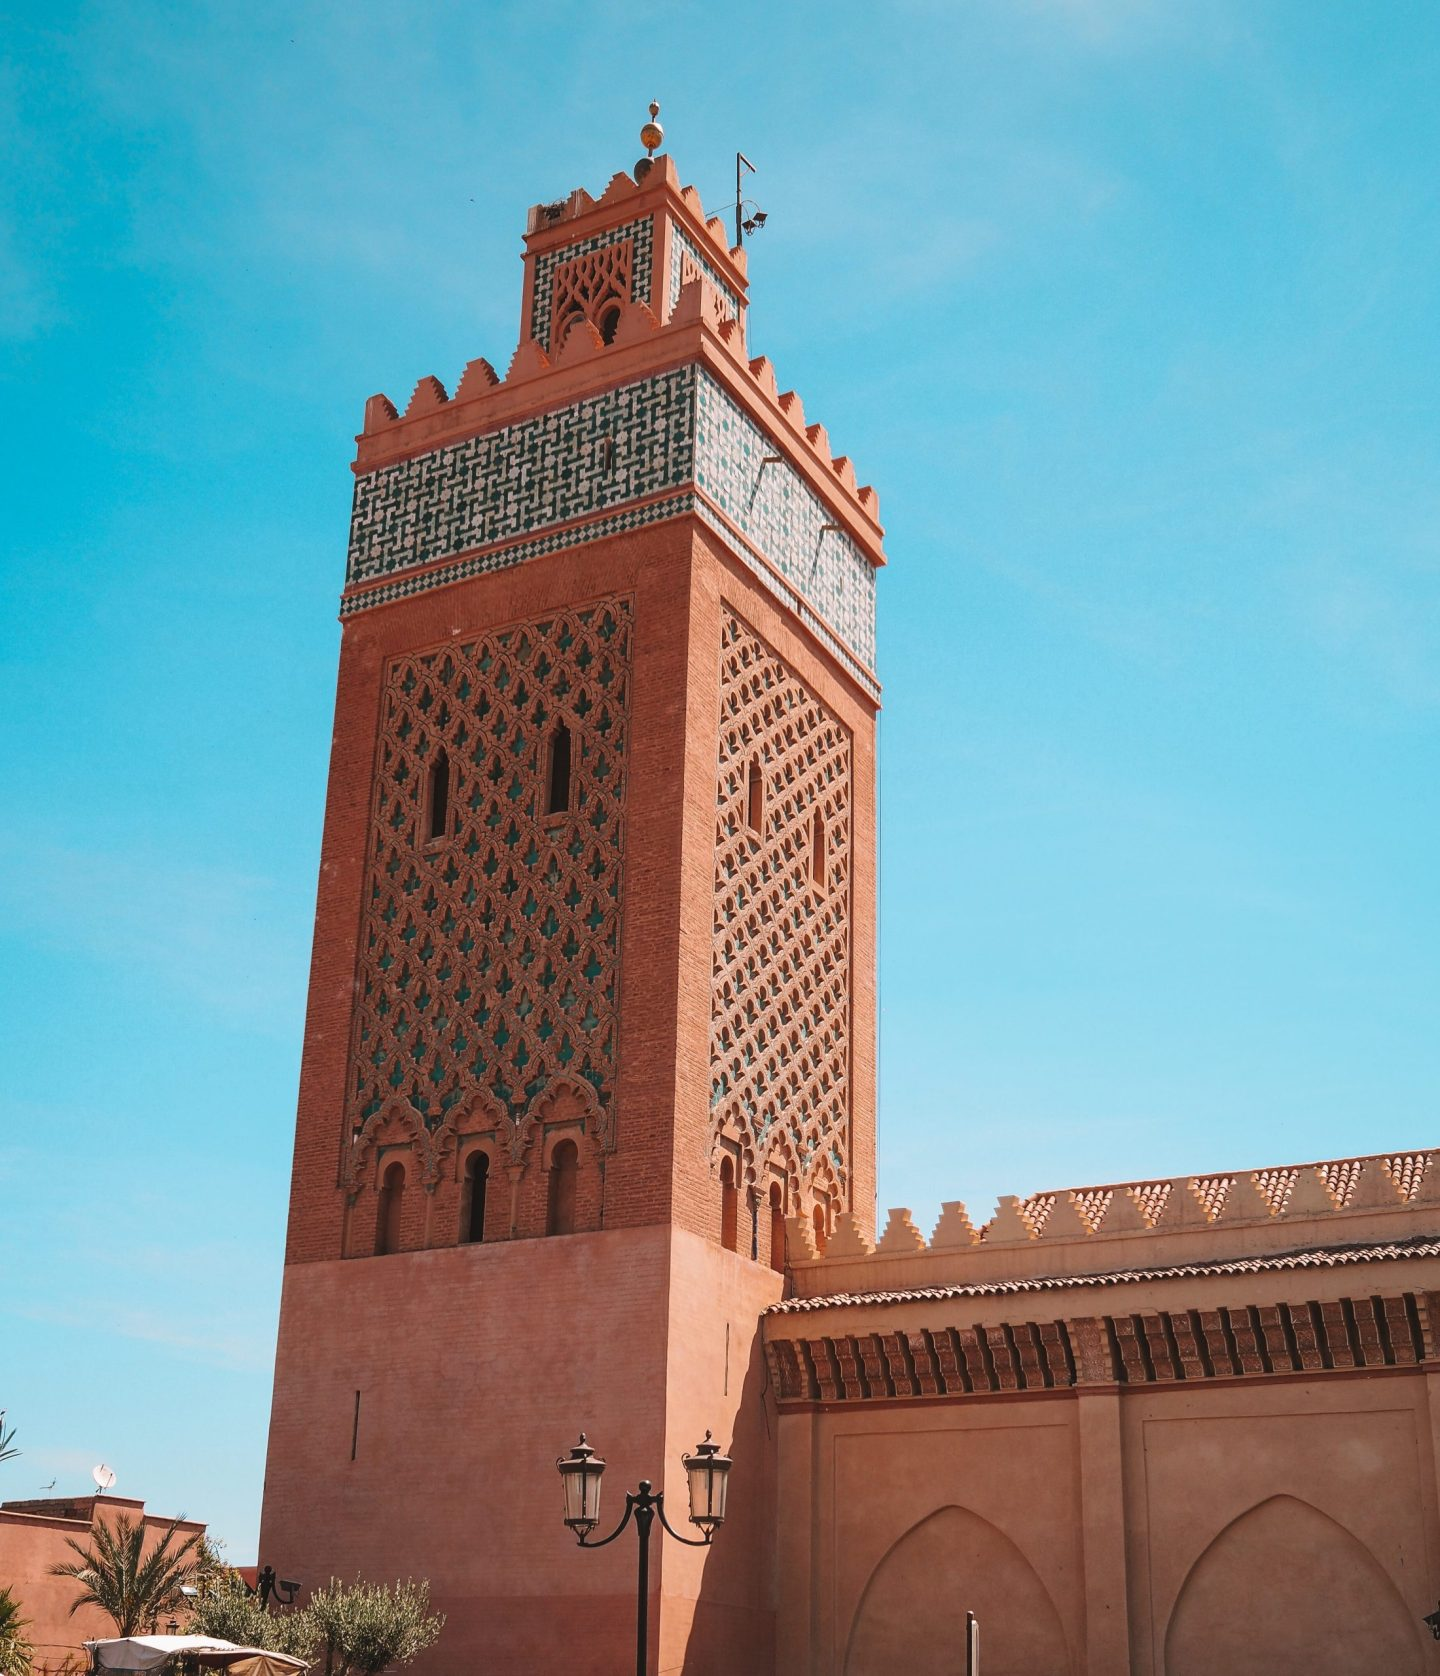 A Marrakech Itinerary - Koutoubia Mosque